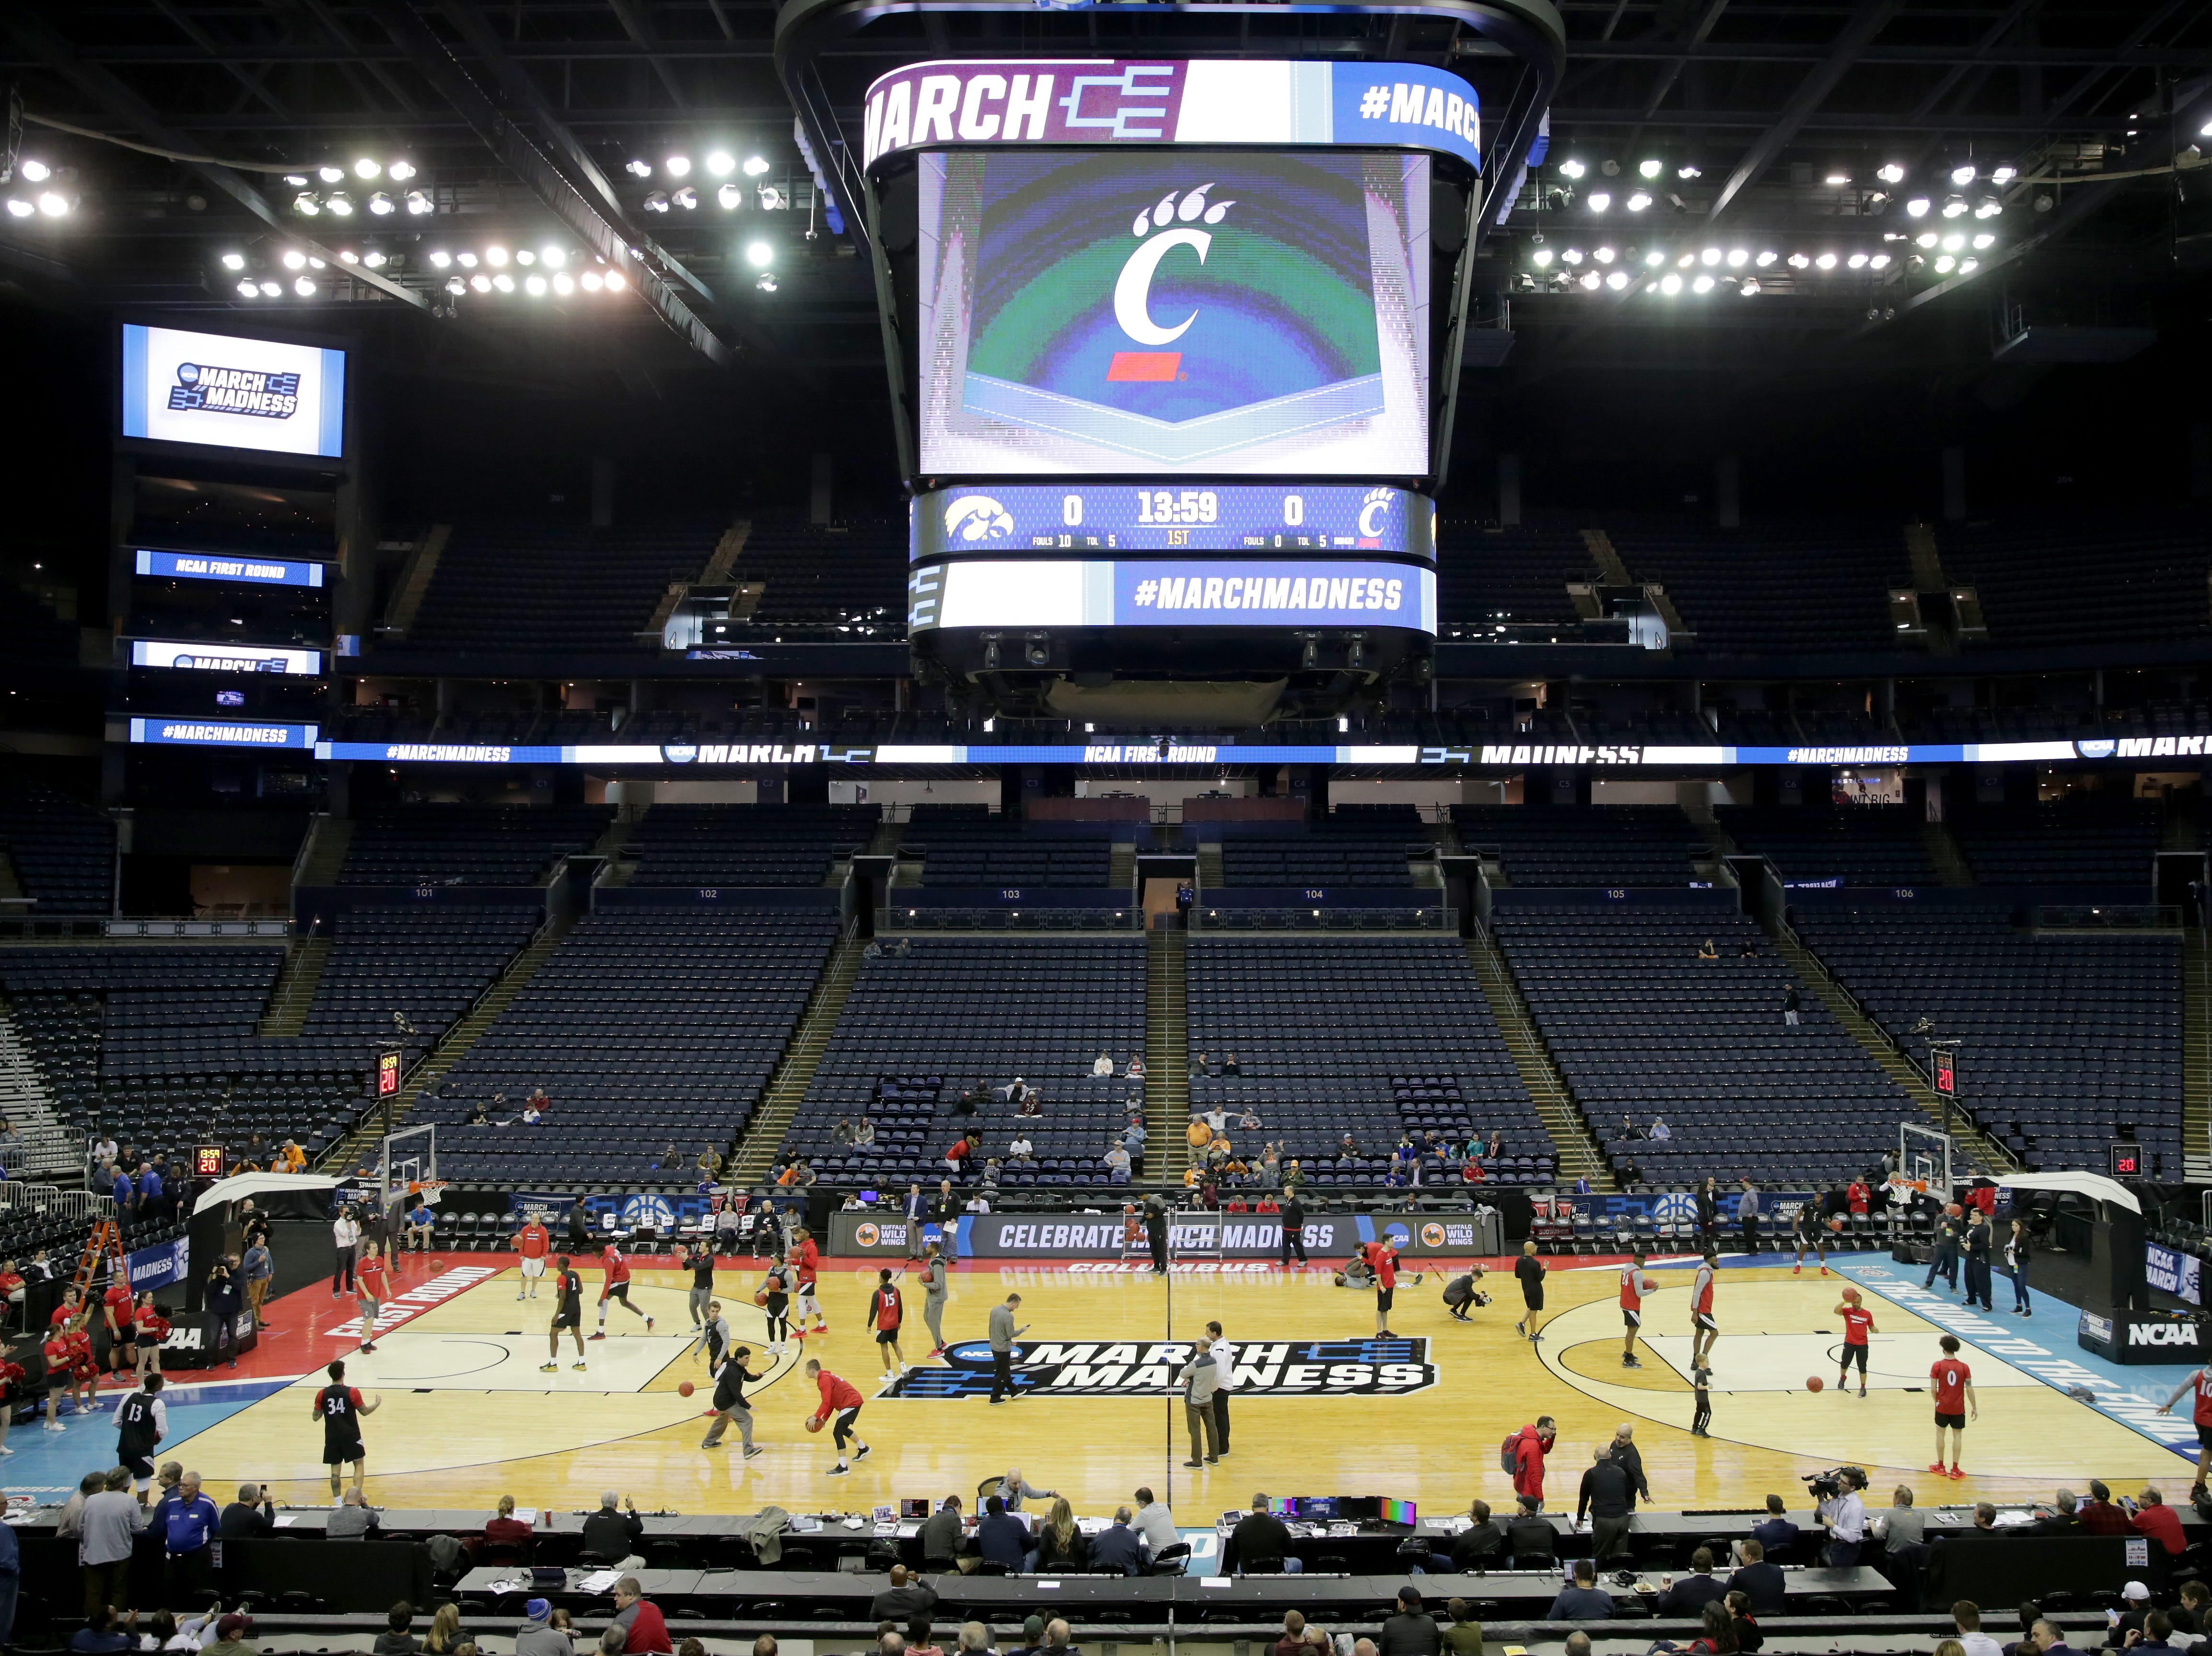 The Cincinnati Bearcats practice, Thursday, March 21, 2019, at Nationwide Arena in Columbus, Ohio.